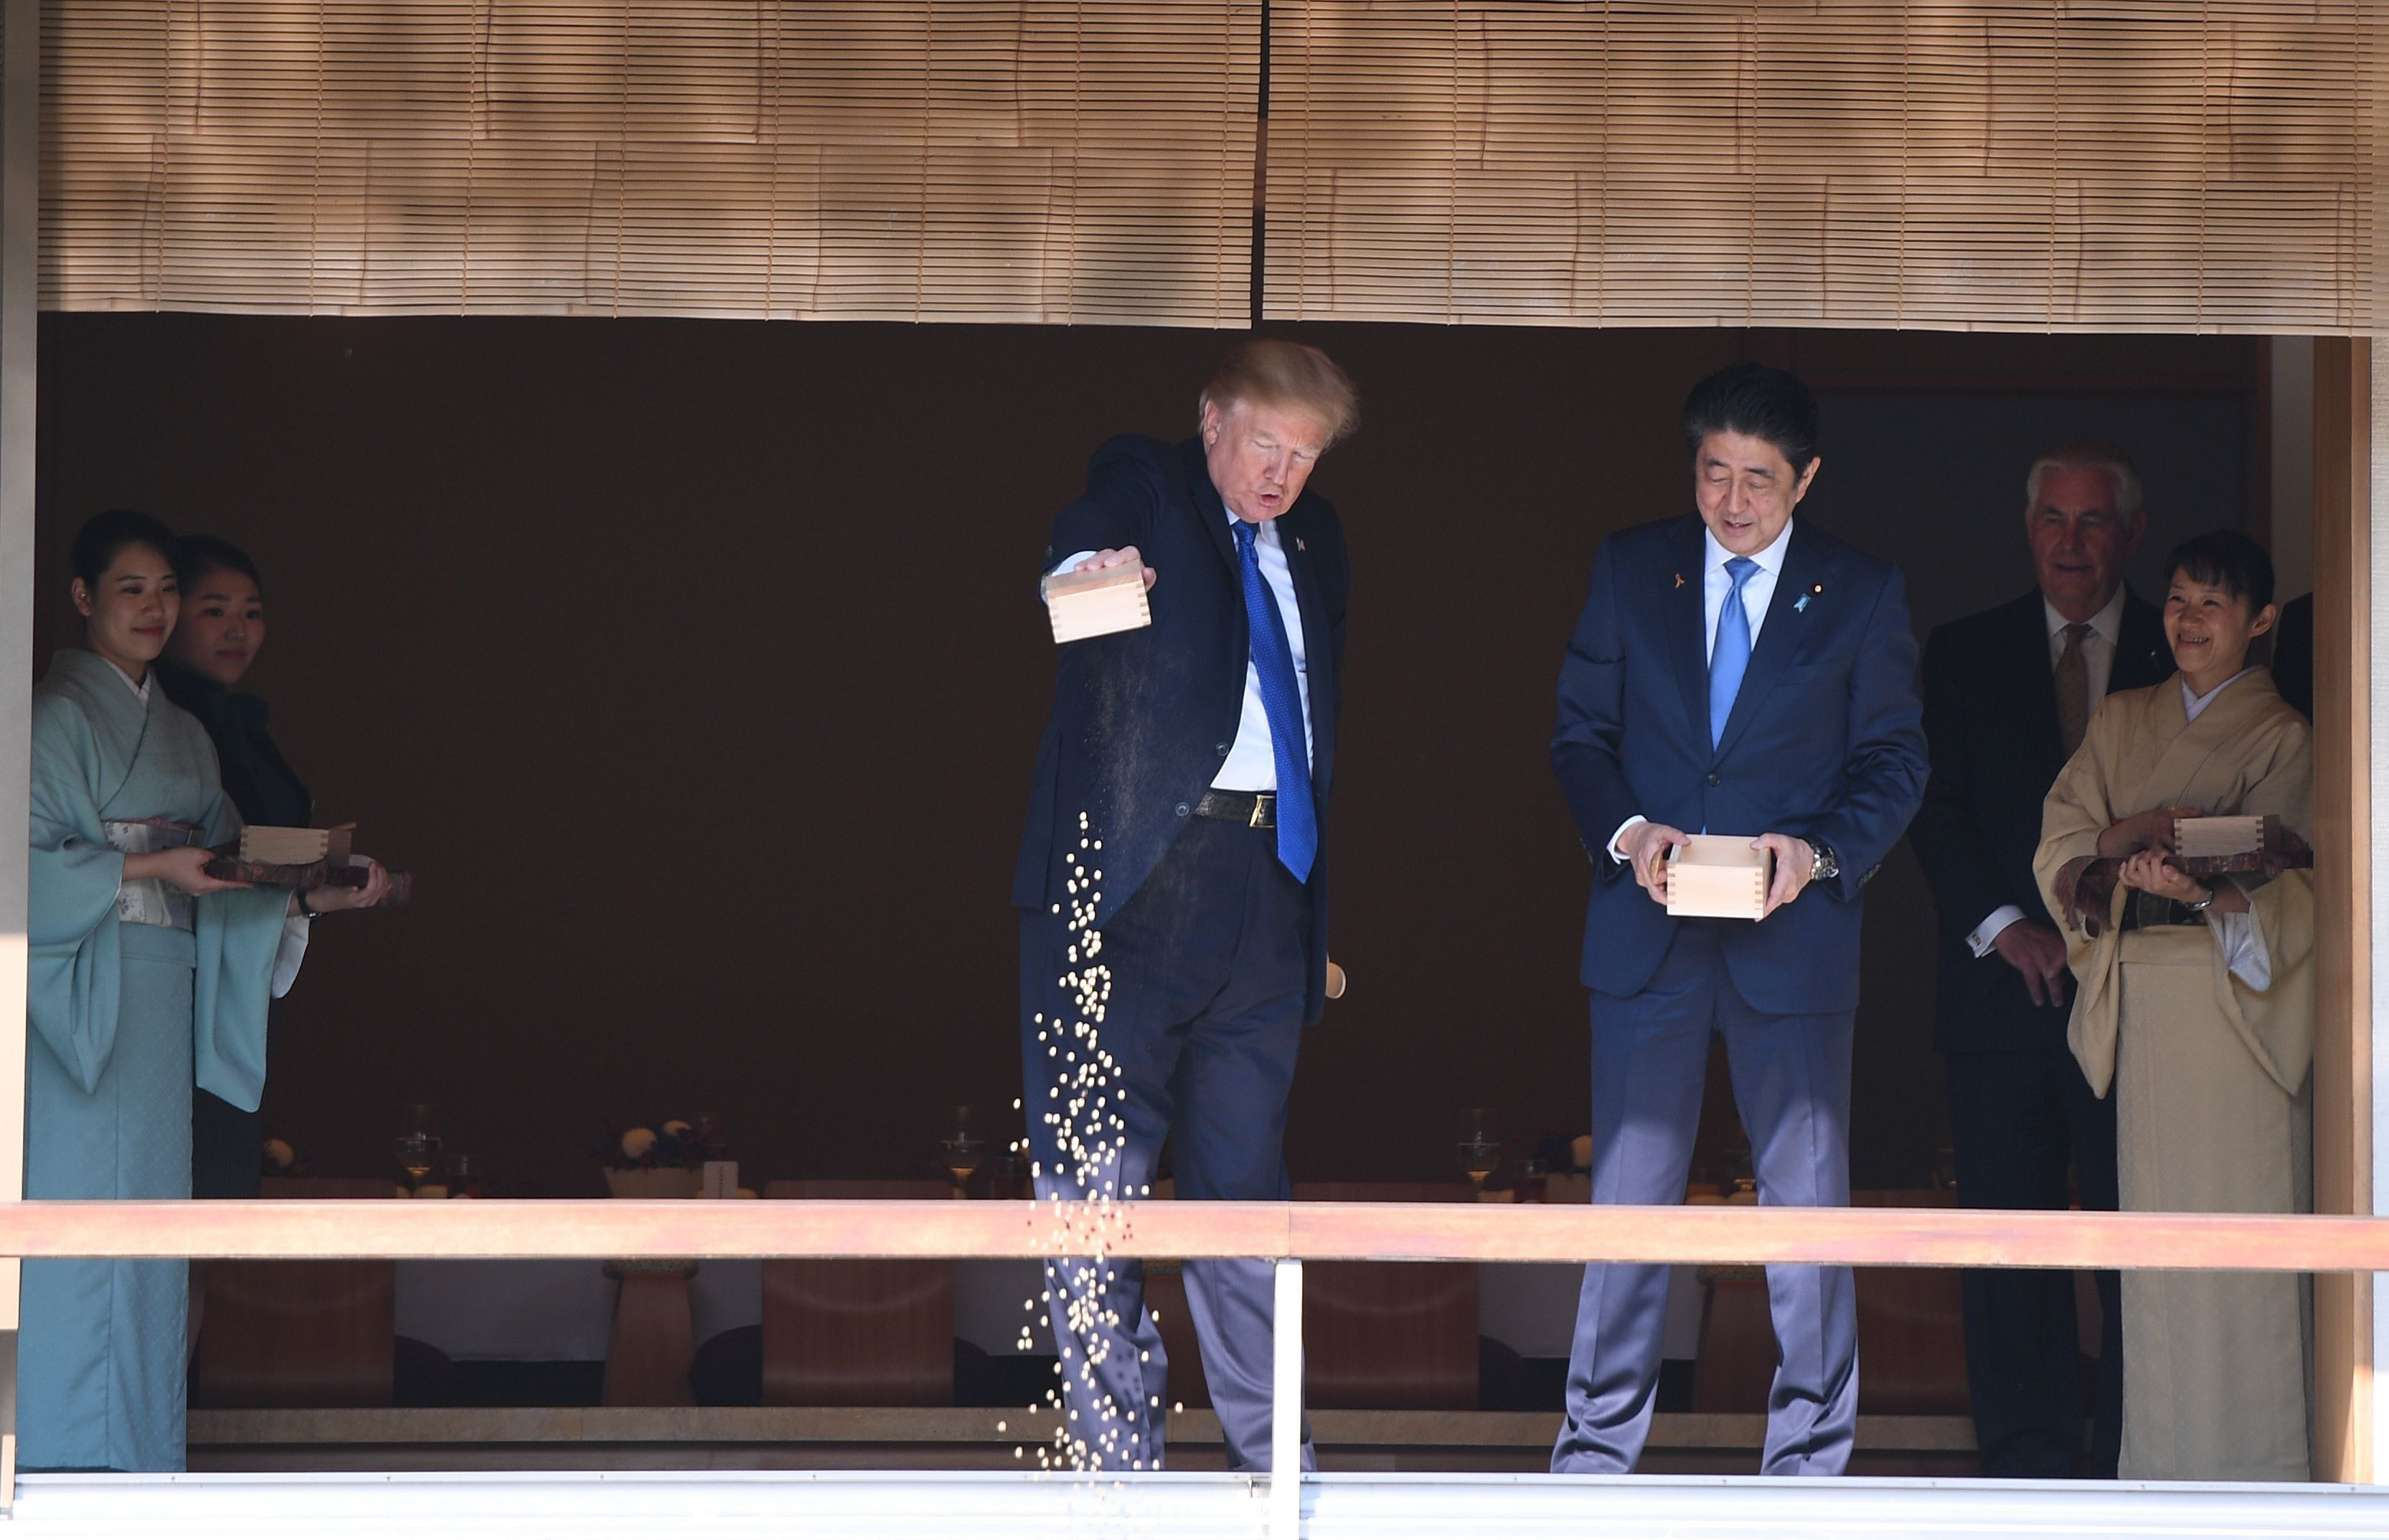 Trump Ridiculed For 'Fish Food Gaffe' - But Entire Video Tells A Different